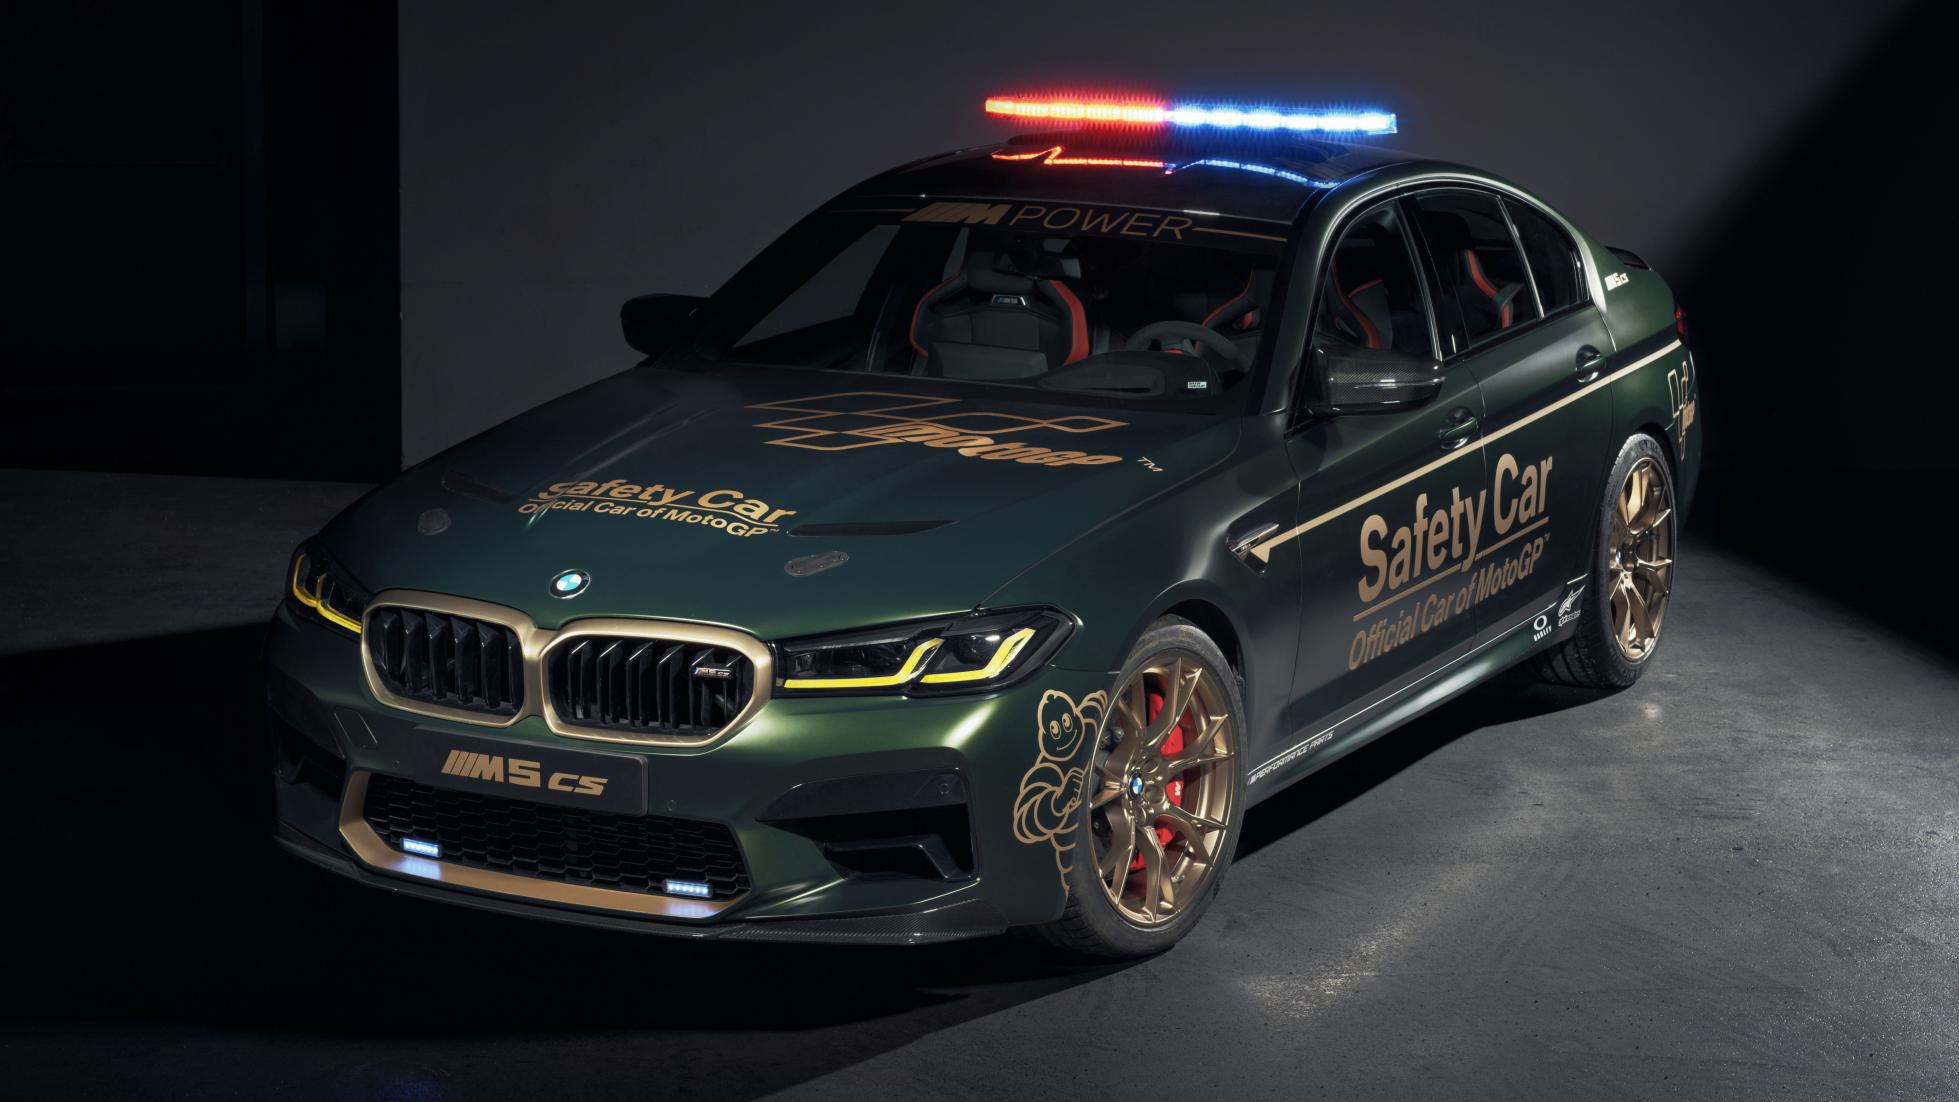 The BMW M5 as a MotoGP safety car, alternative front view